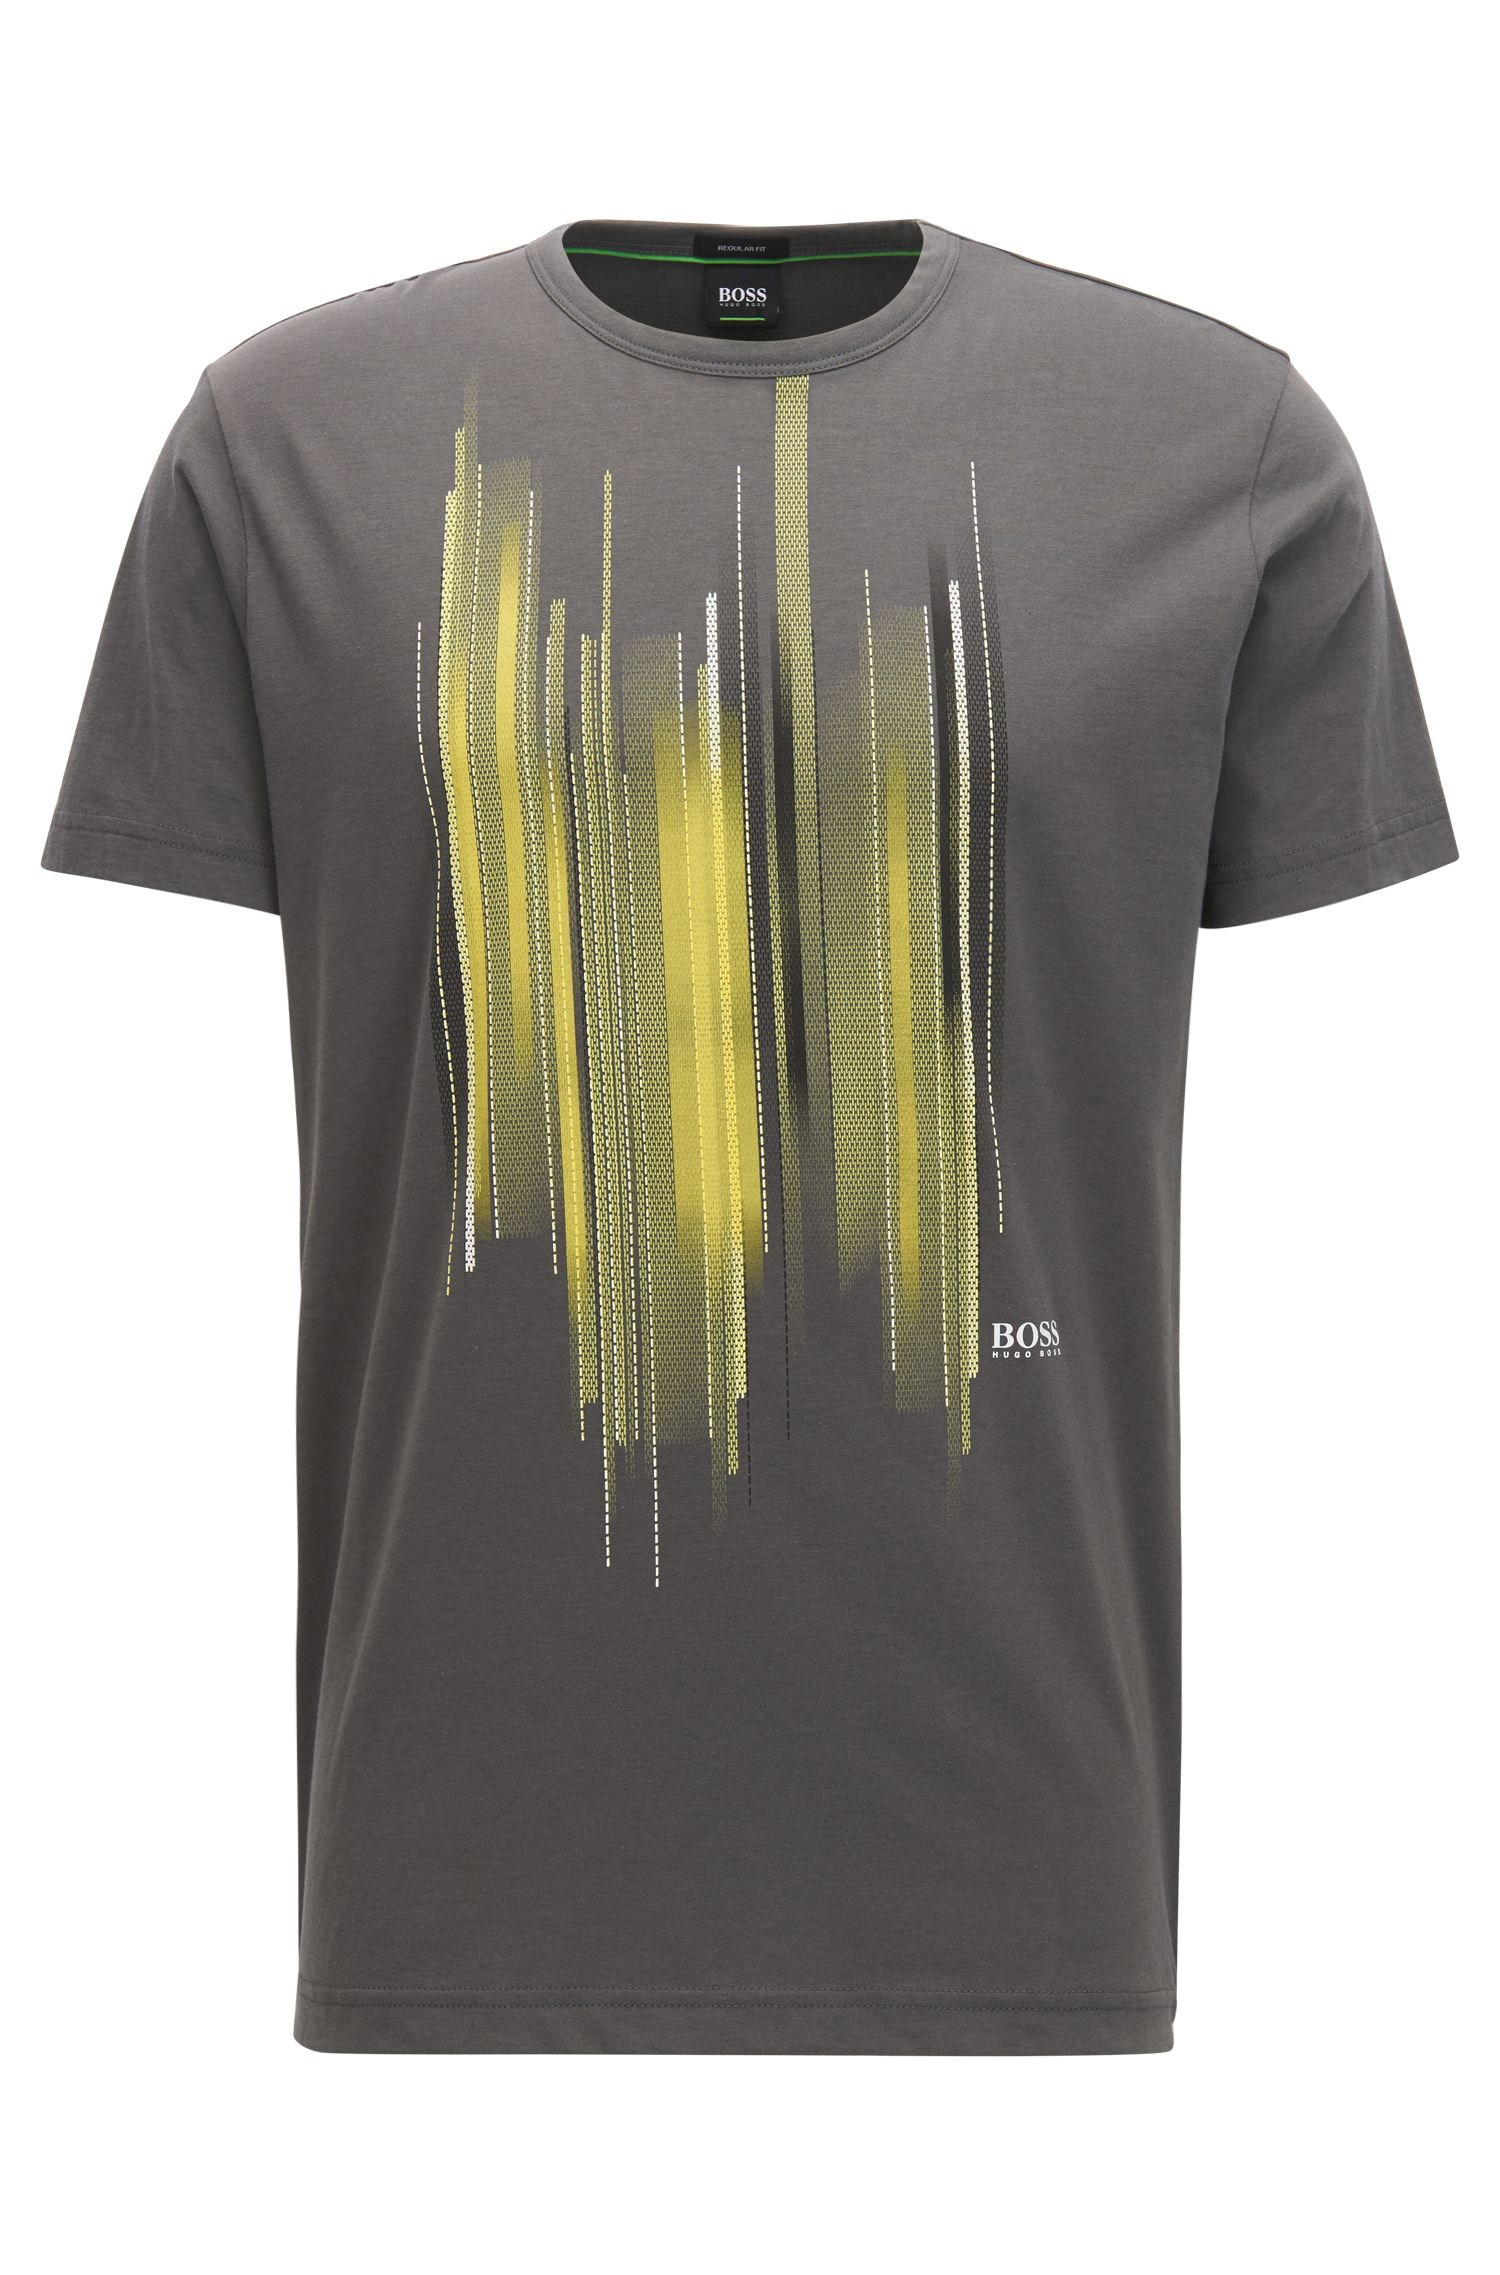 Cotton Graphic T-Shirt | Tee, Charcoal